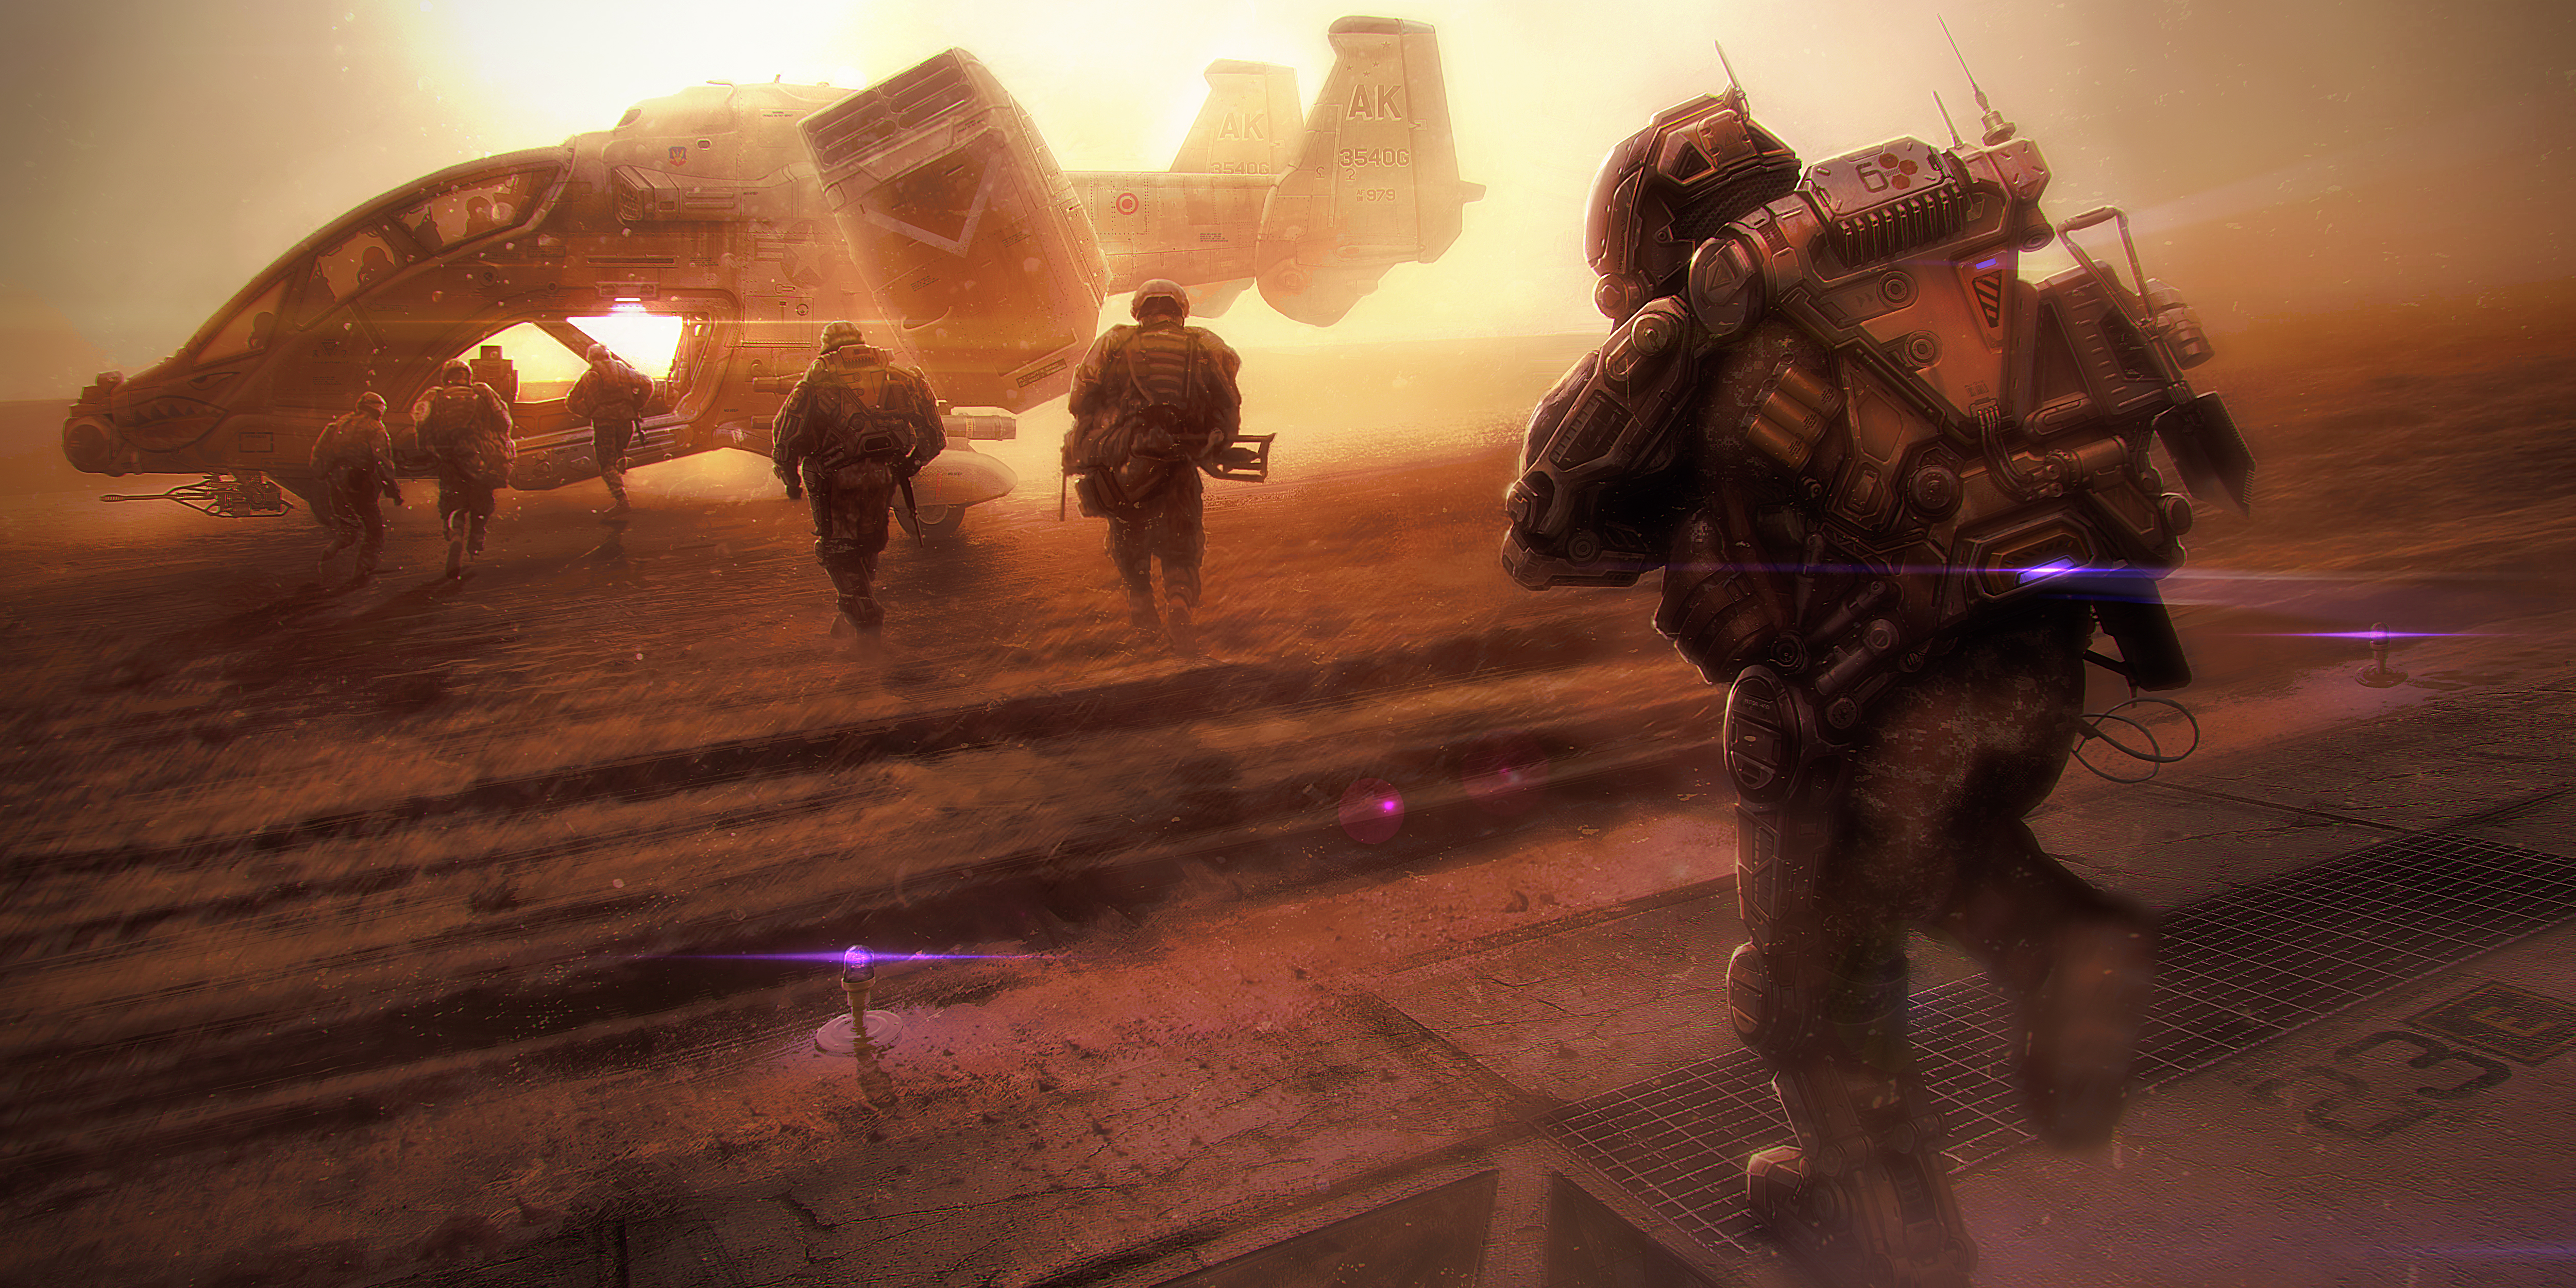 spec_ops_a_near_done_88_FINISHED.jpg